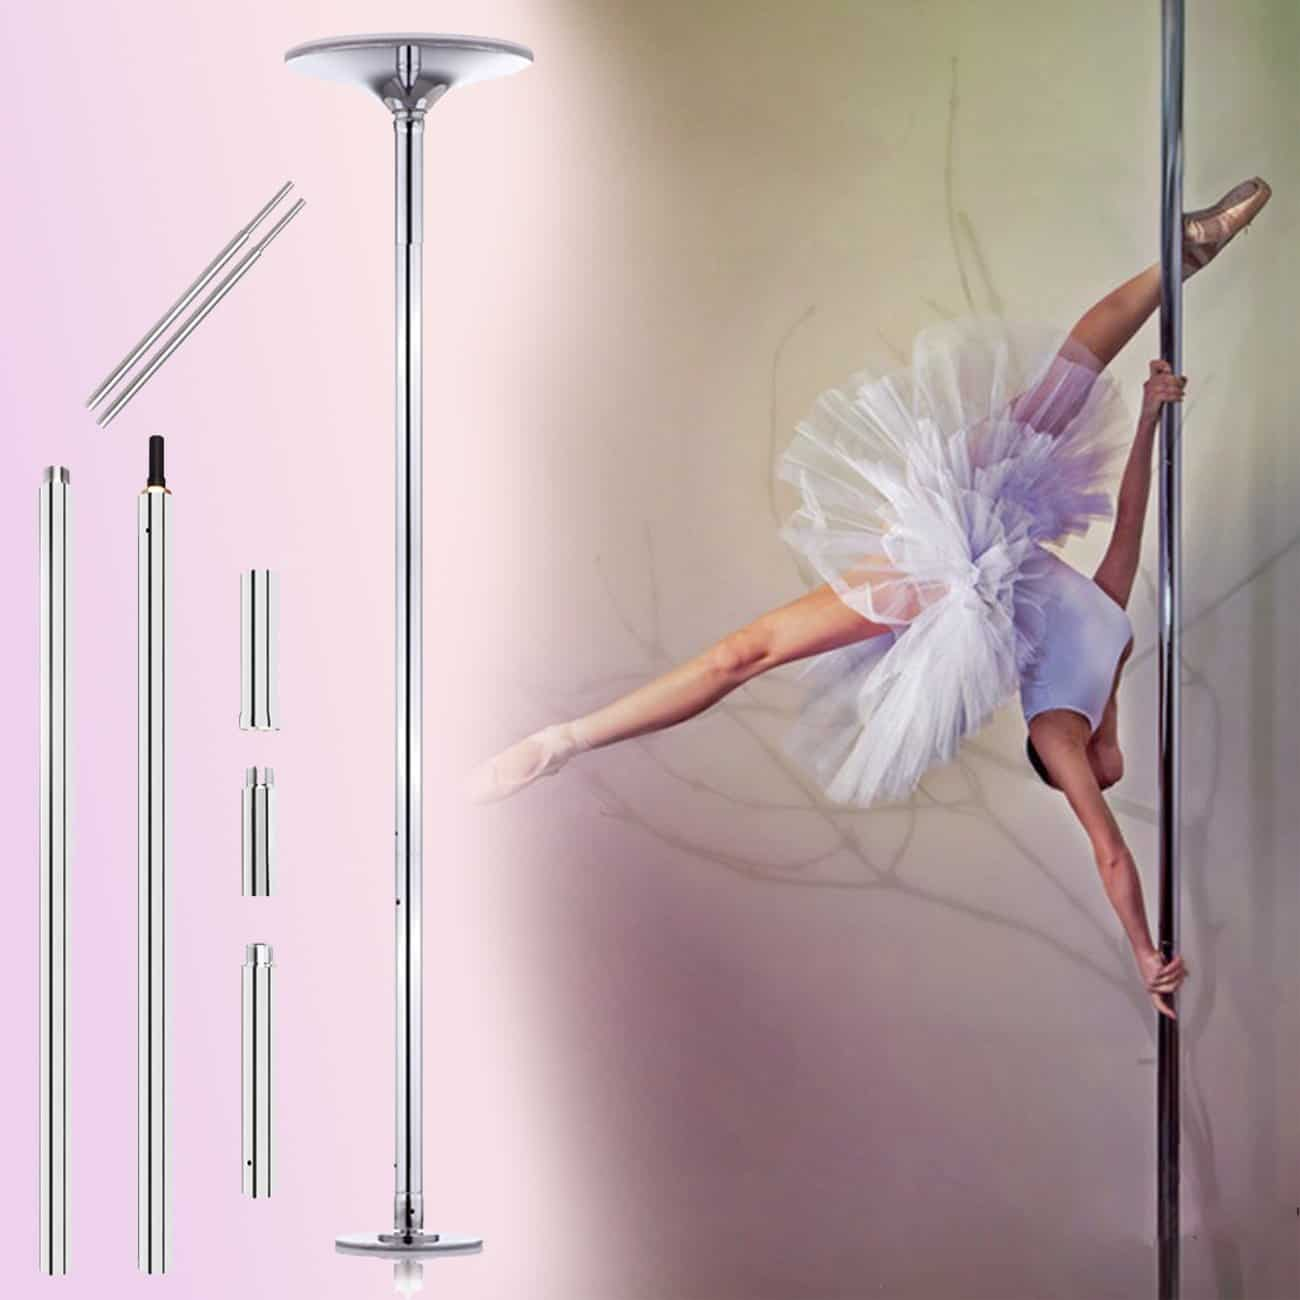 Ridgeyard 45mm dance pole review